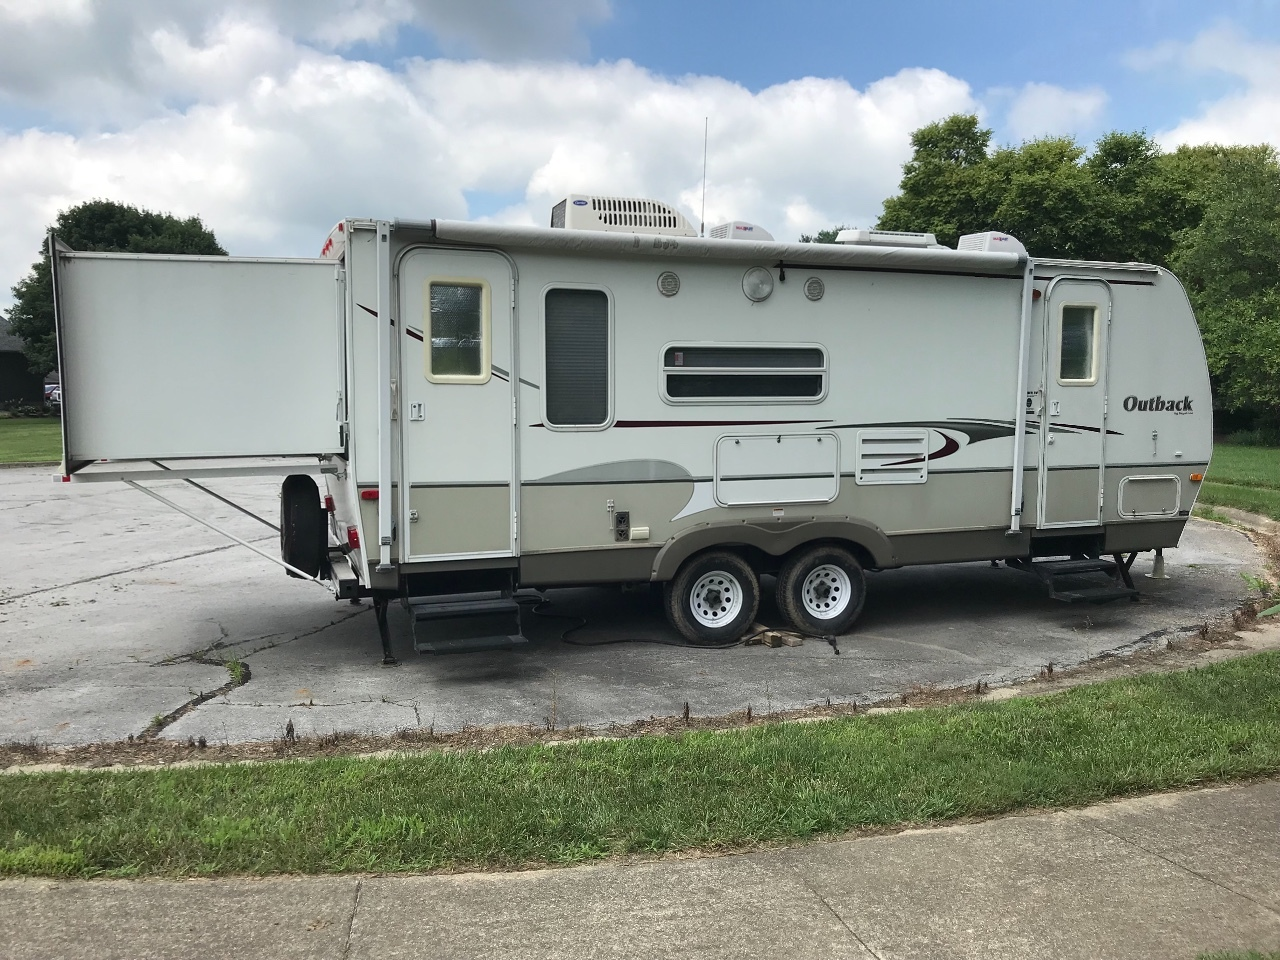 739 keystone outback travel trailers for sale rv trader